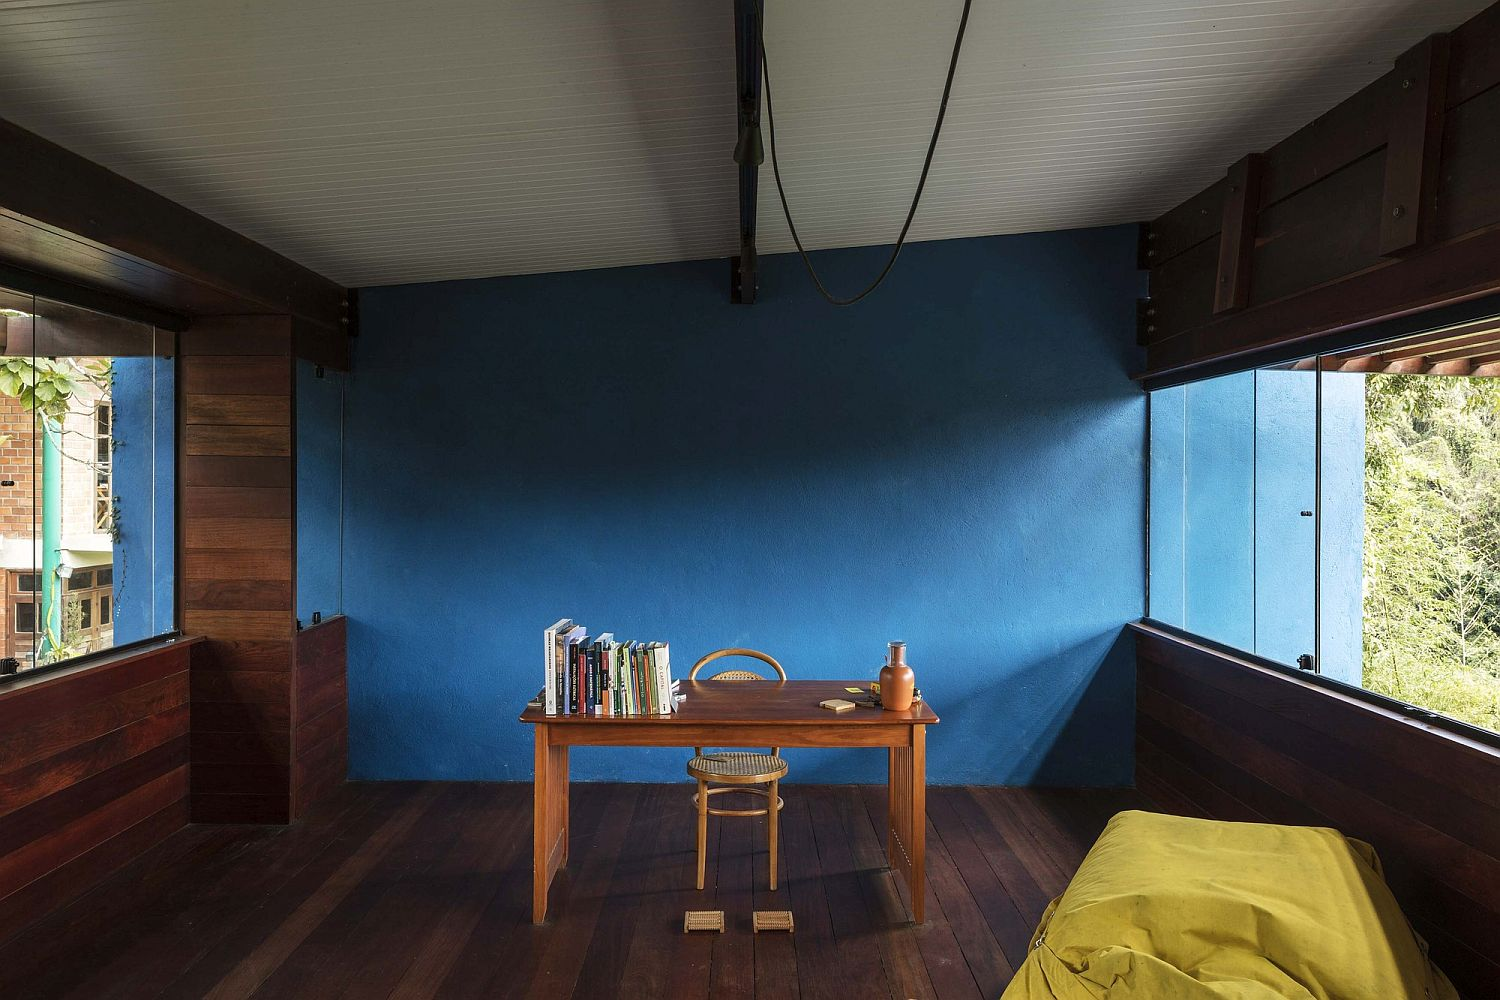 Blue brings color and brightness to the interior